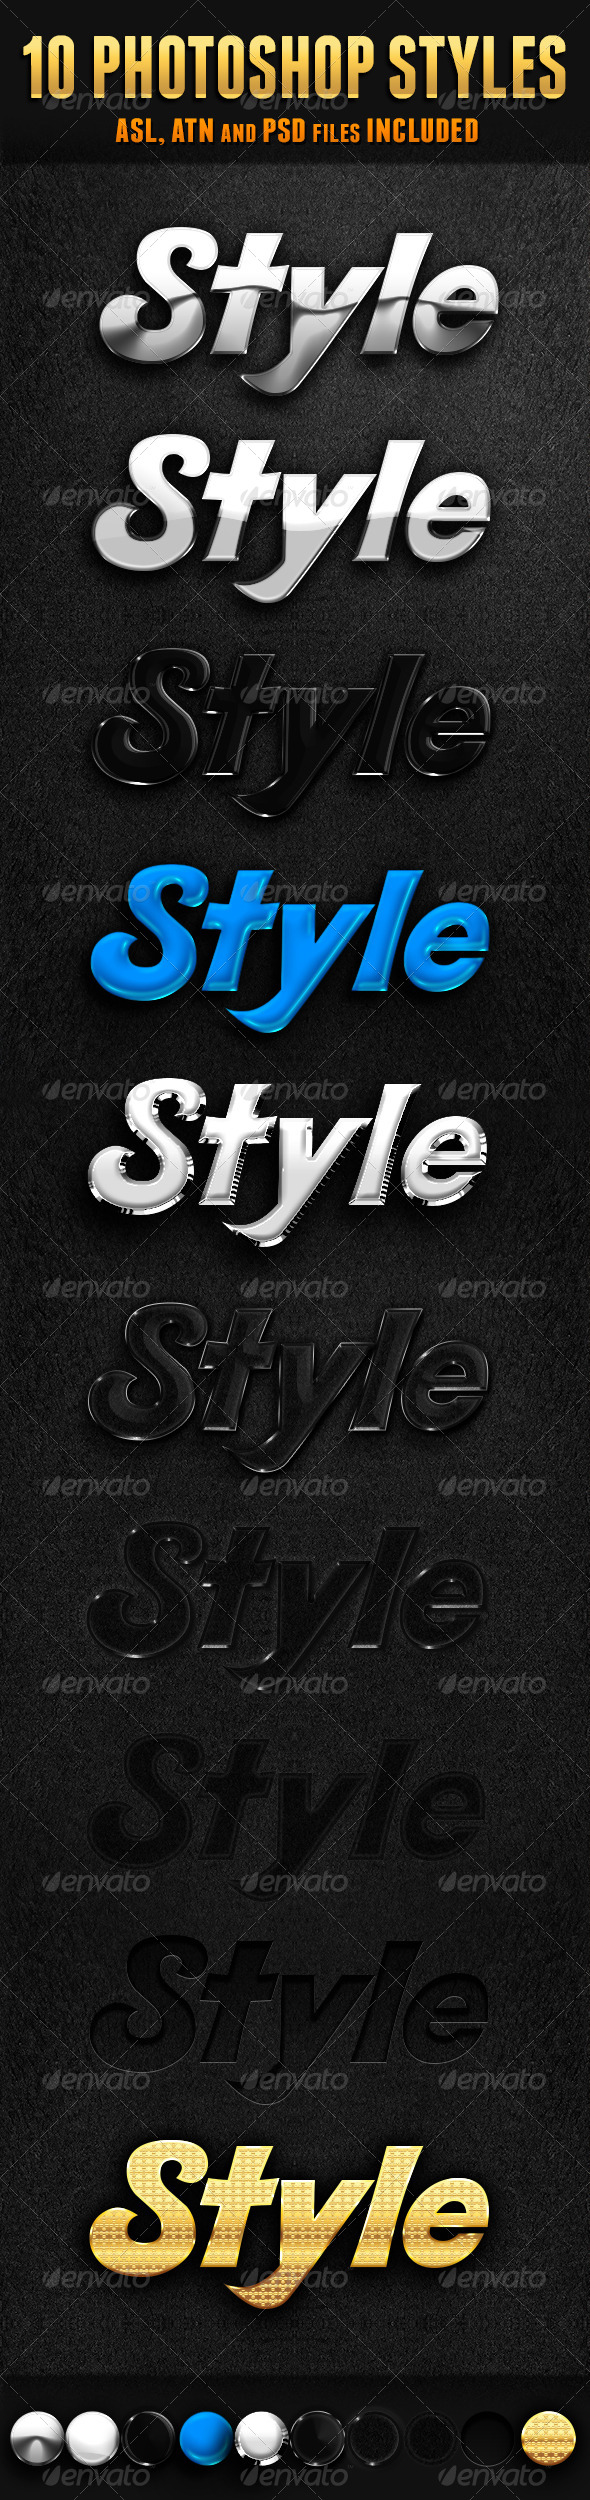 GraphicRiver 10 Photoshop Styles 5920908